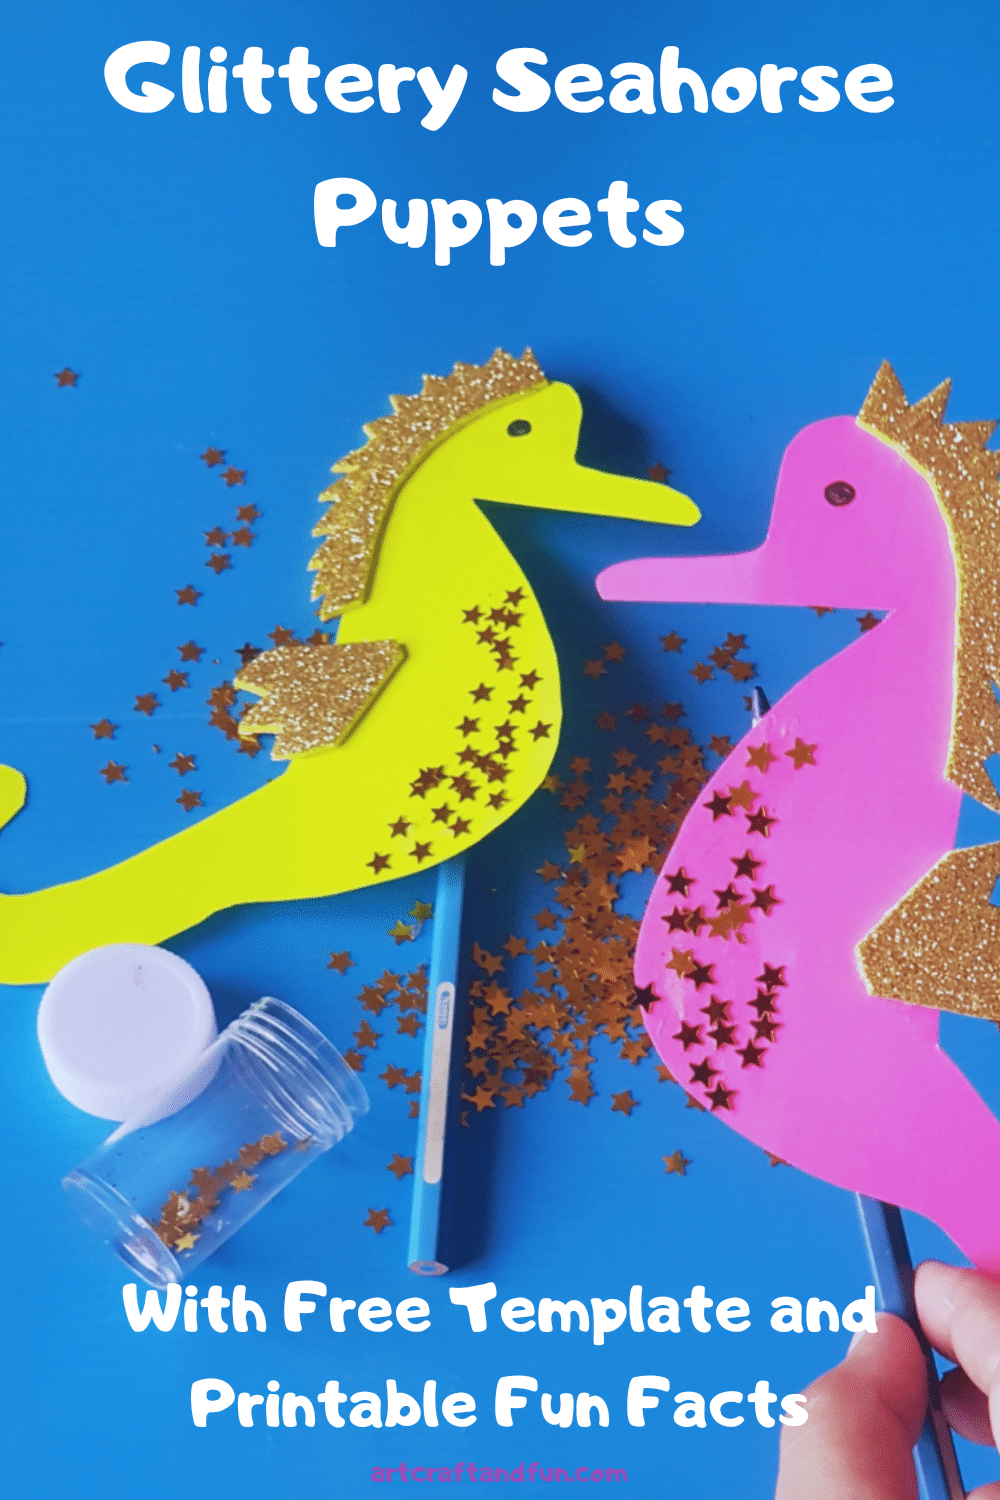 Make Glittery Seahorse Craft With Free Template And Printable Fun Facts Today